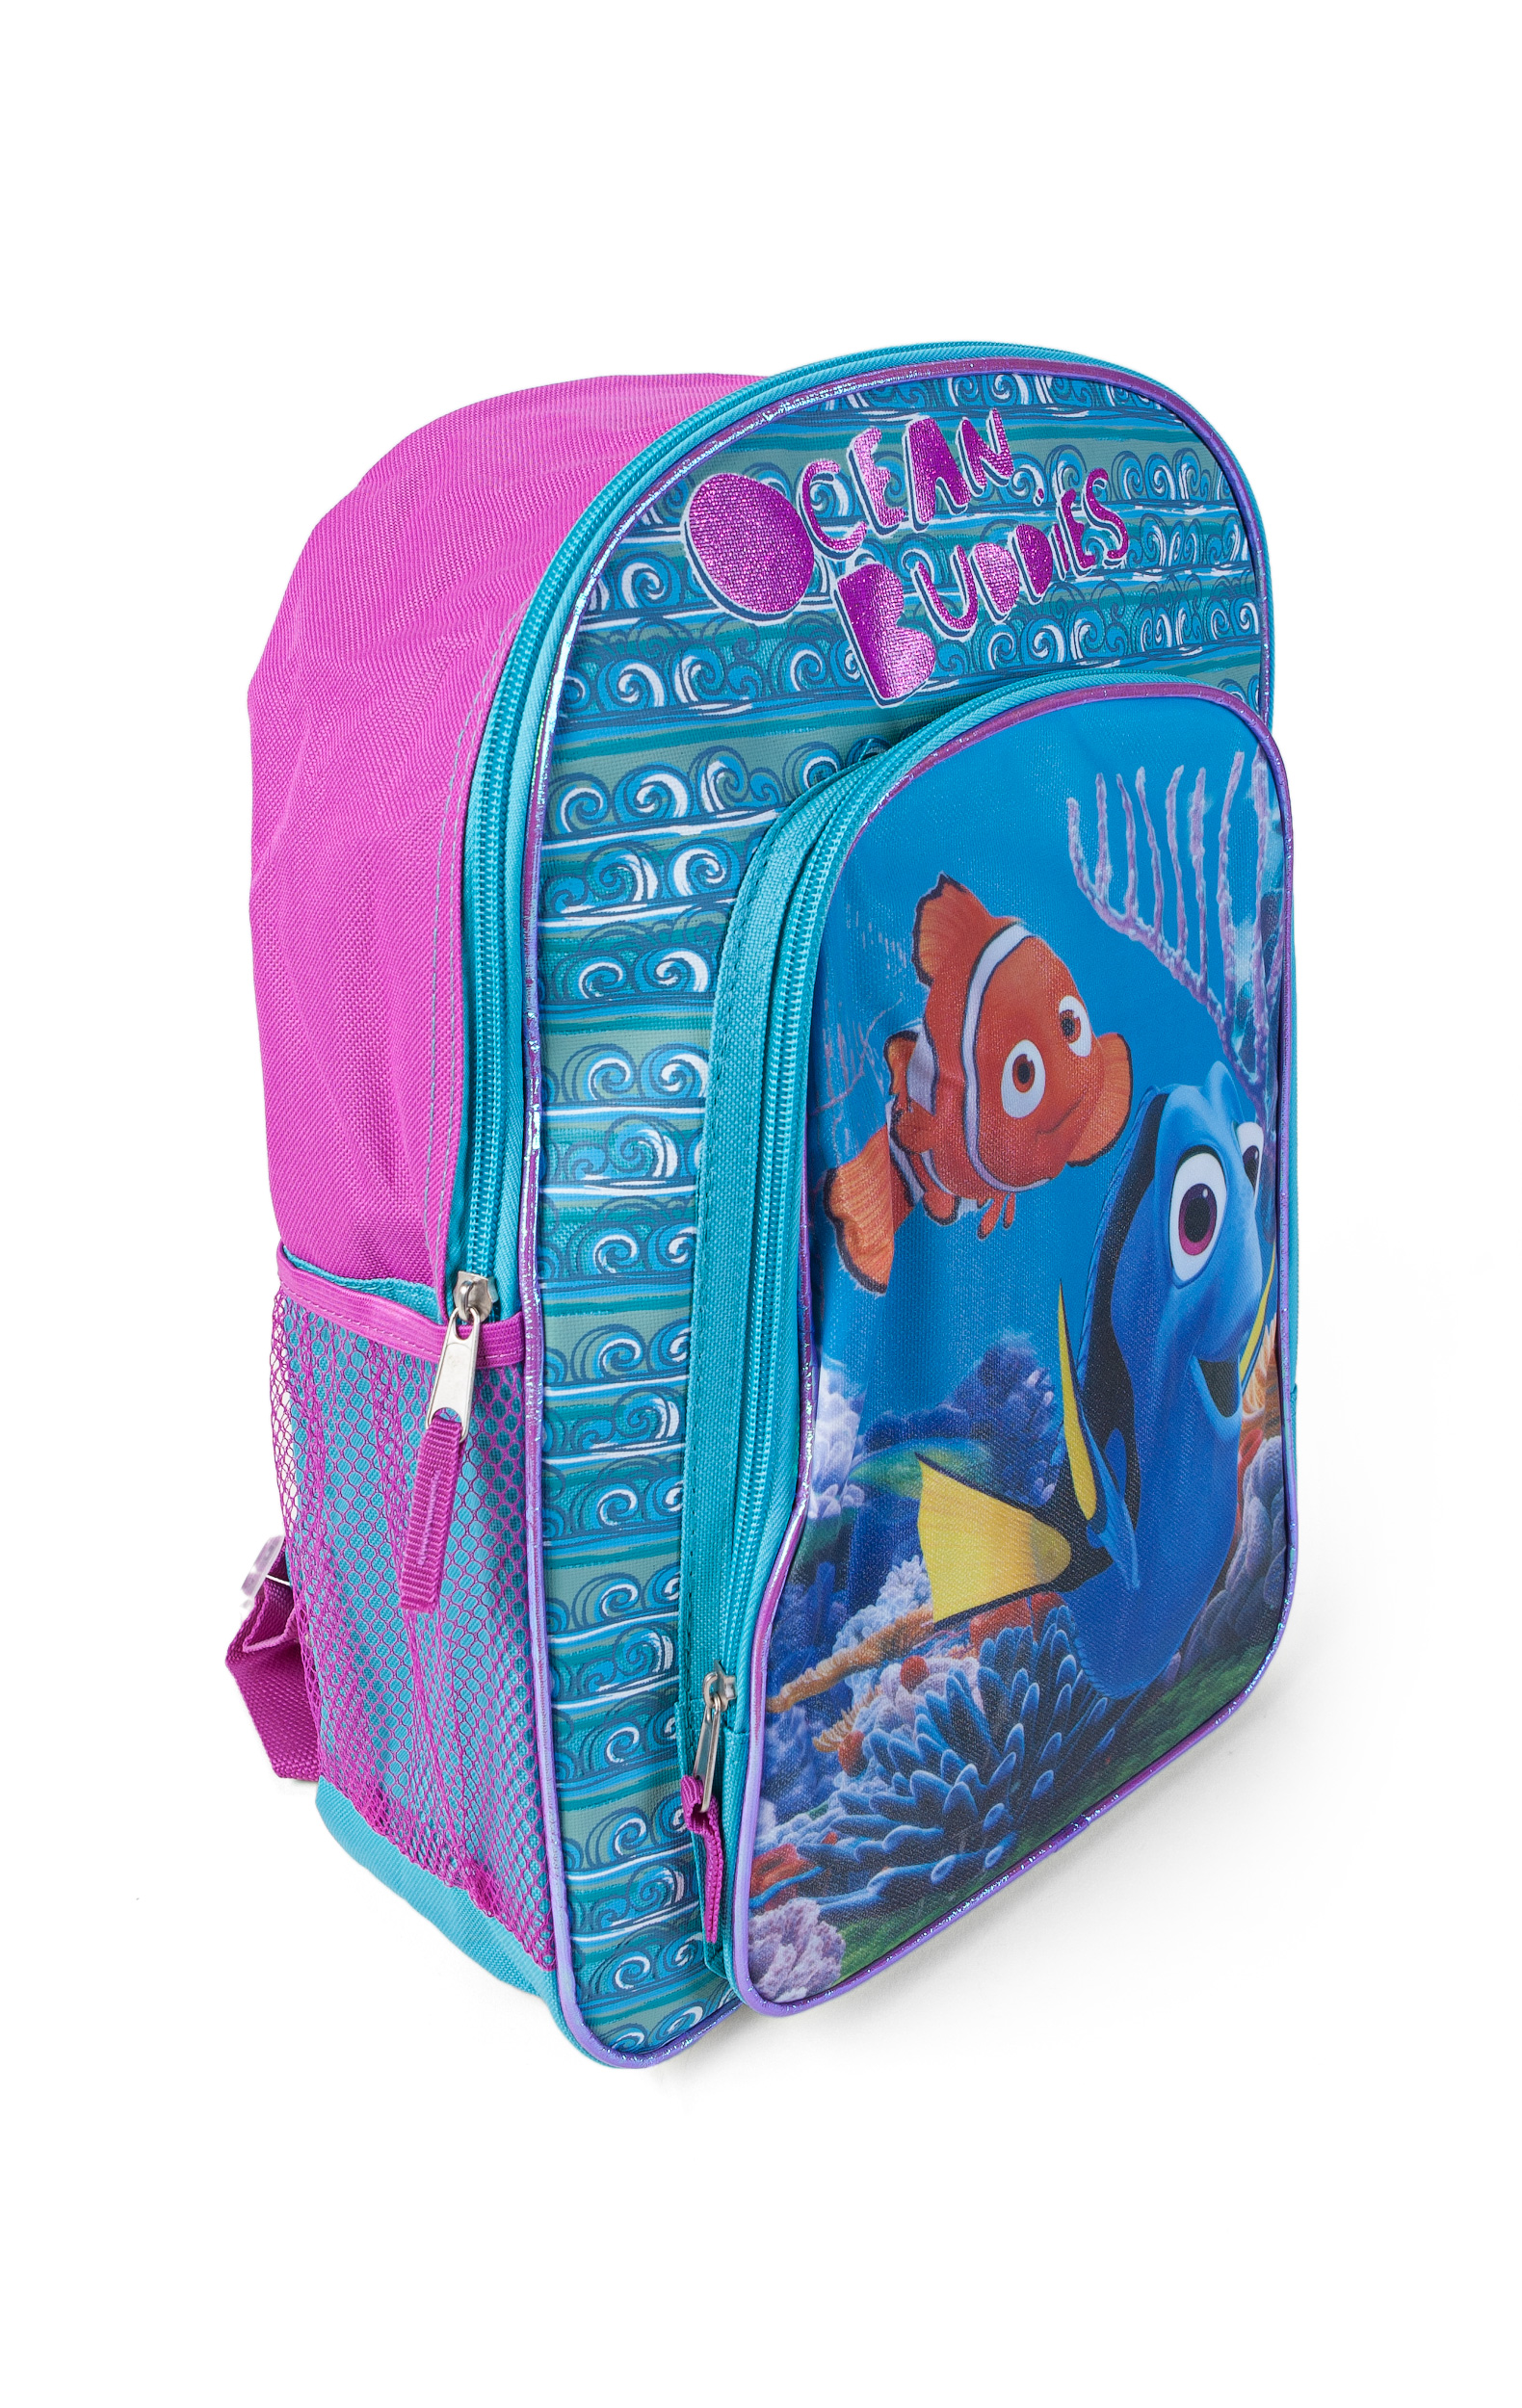 c7ec420f4ac Image is loading Disney-Pixar-Finding-Dory-Ocean-Buddies-Backpack-with-